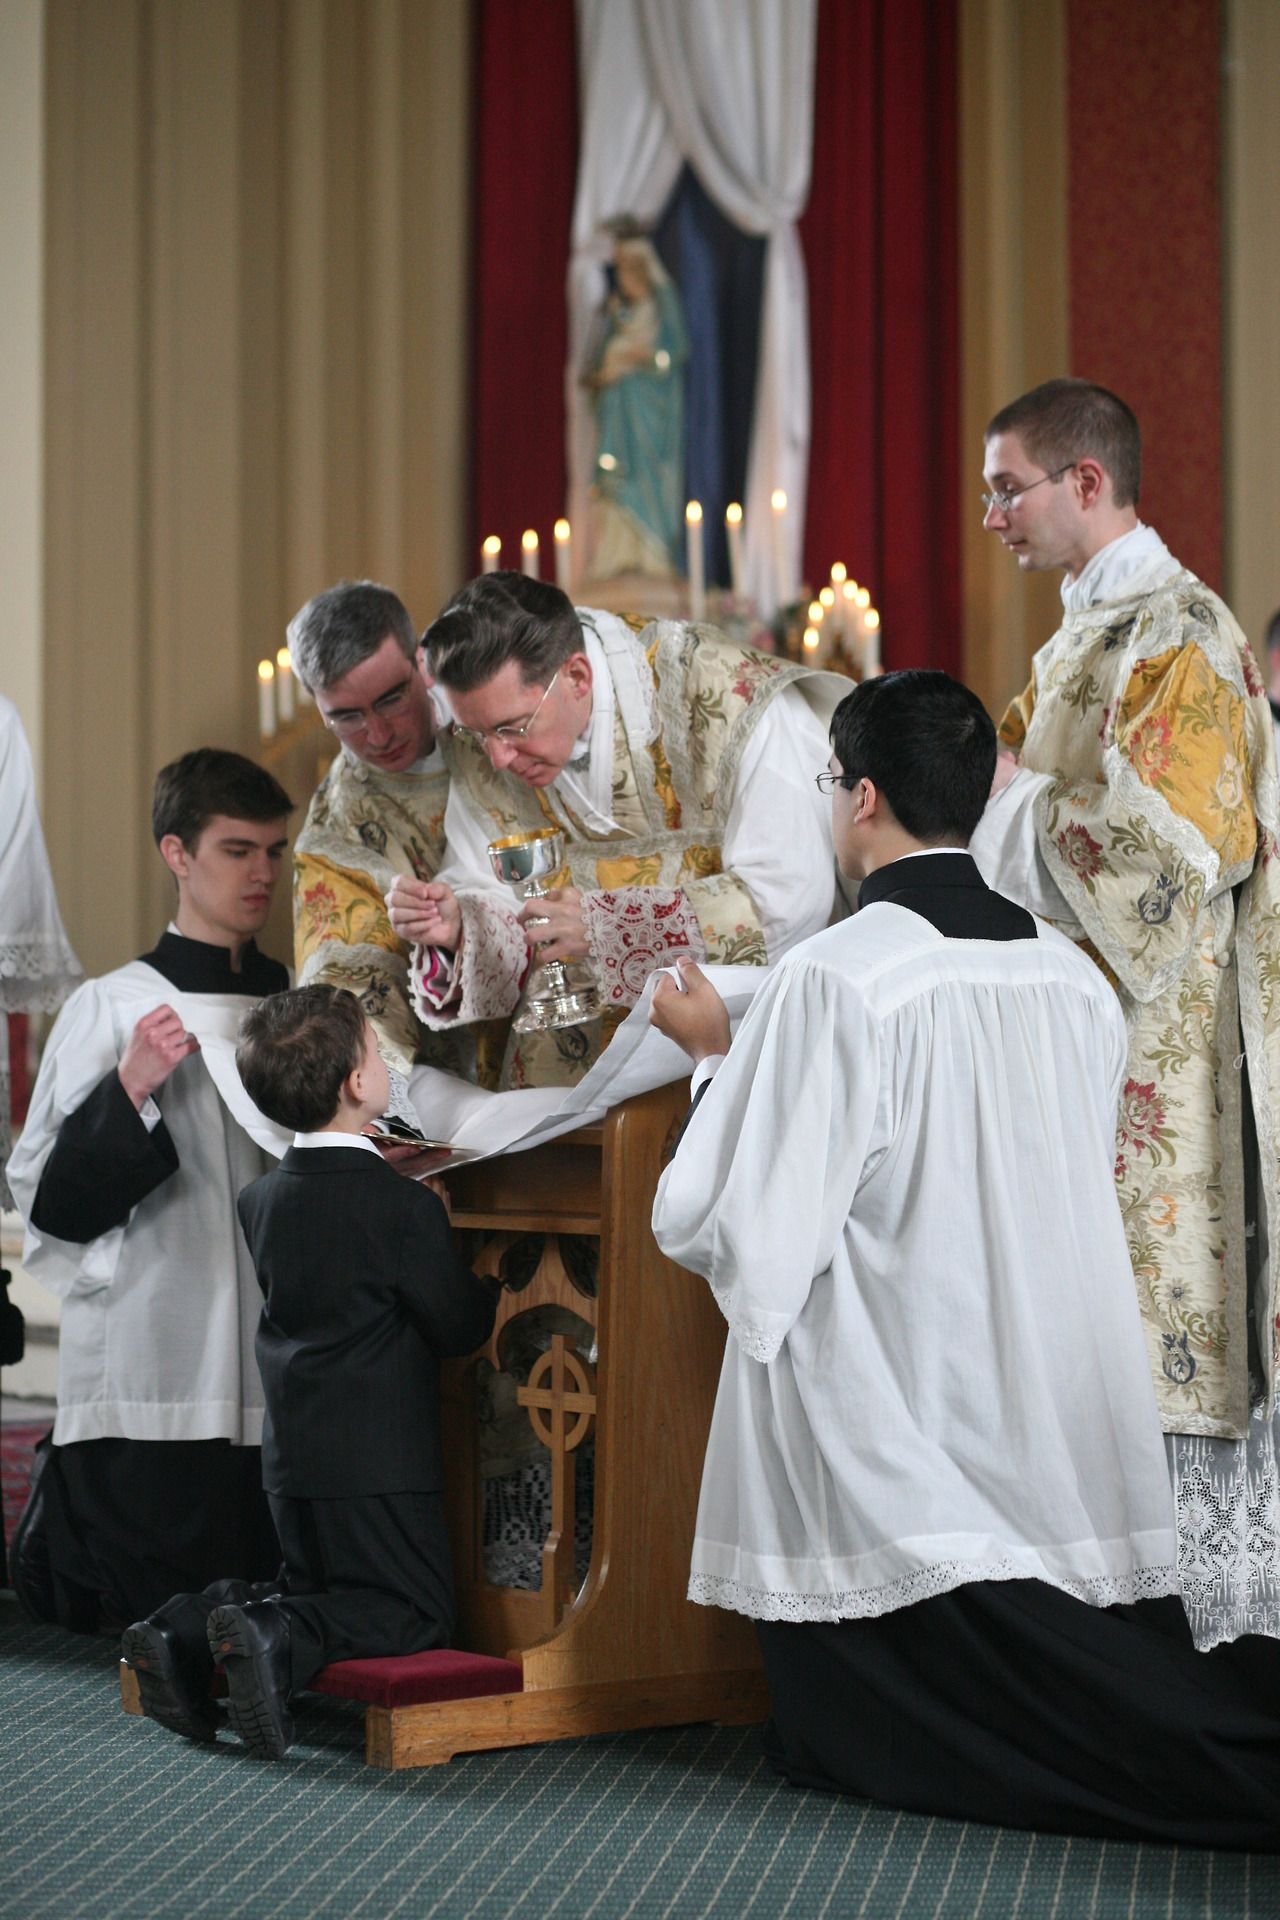 Communion with Christ.  Do you think our Catholics kids would understand that CHRIST IS PRESENT IN THE EUCHARIST if we taught them to receive Communion in a posture of REVERENCE?  Just wondering...